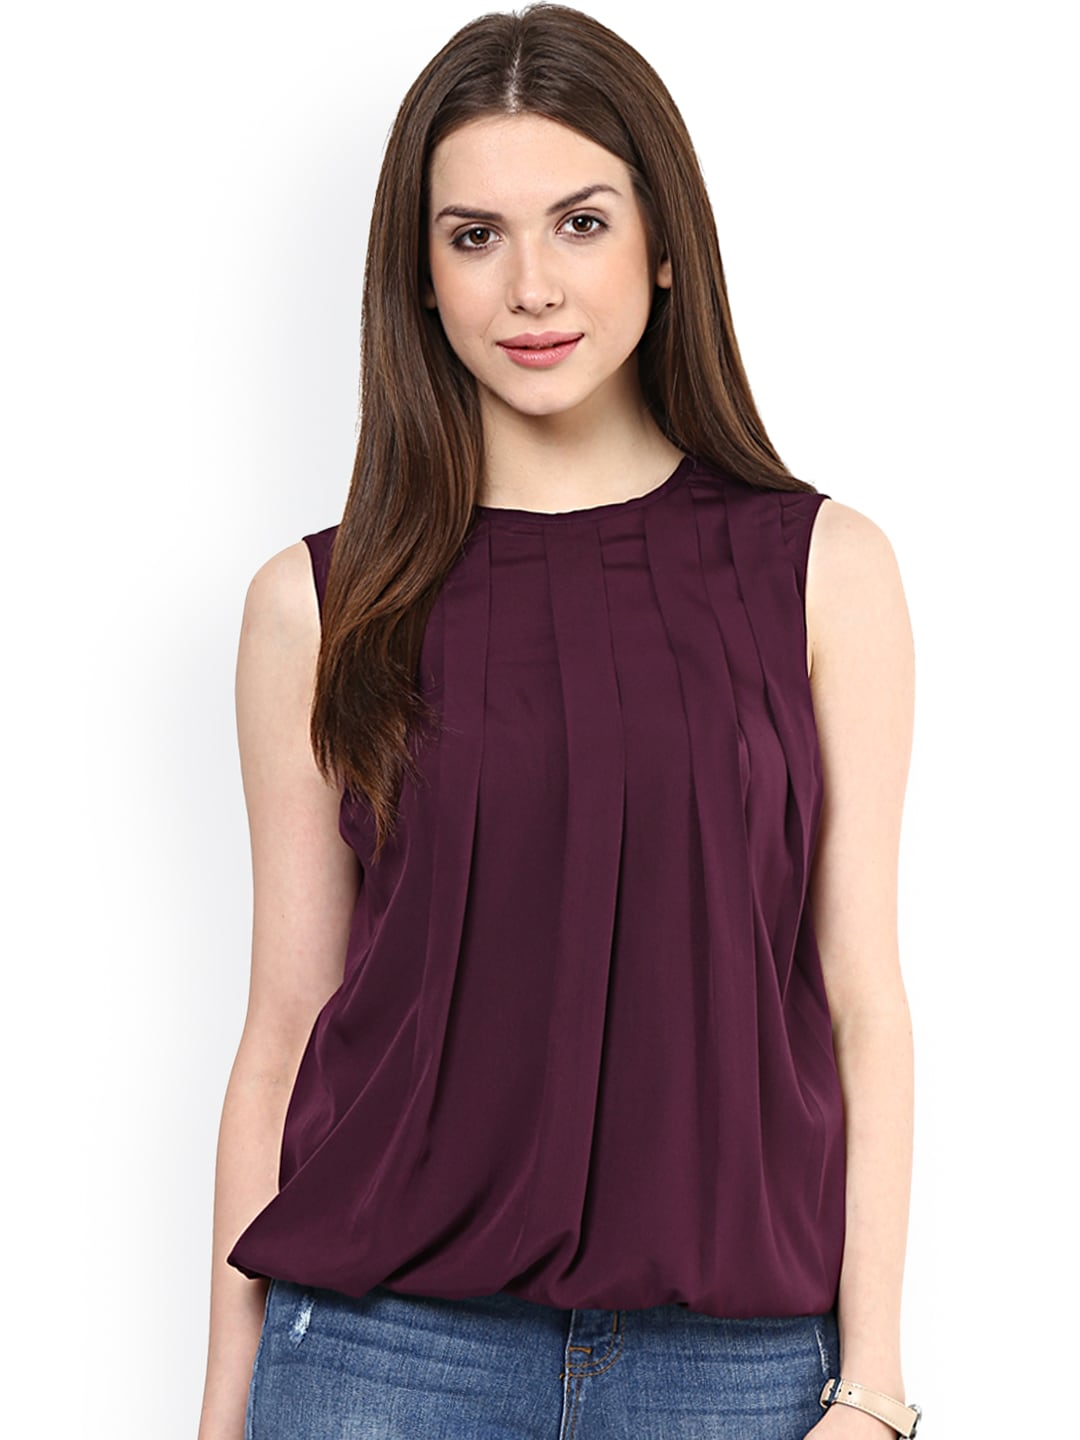 15 Latest Styles In Sleeveless Tops For Women